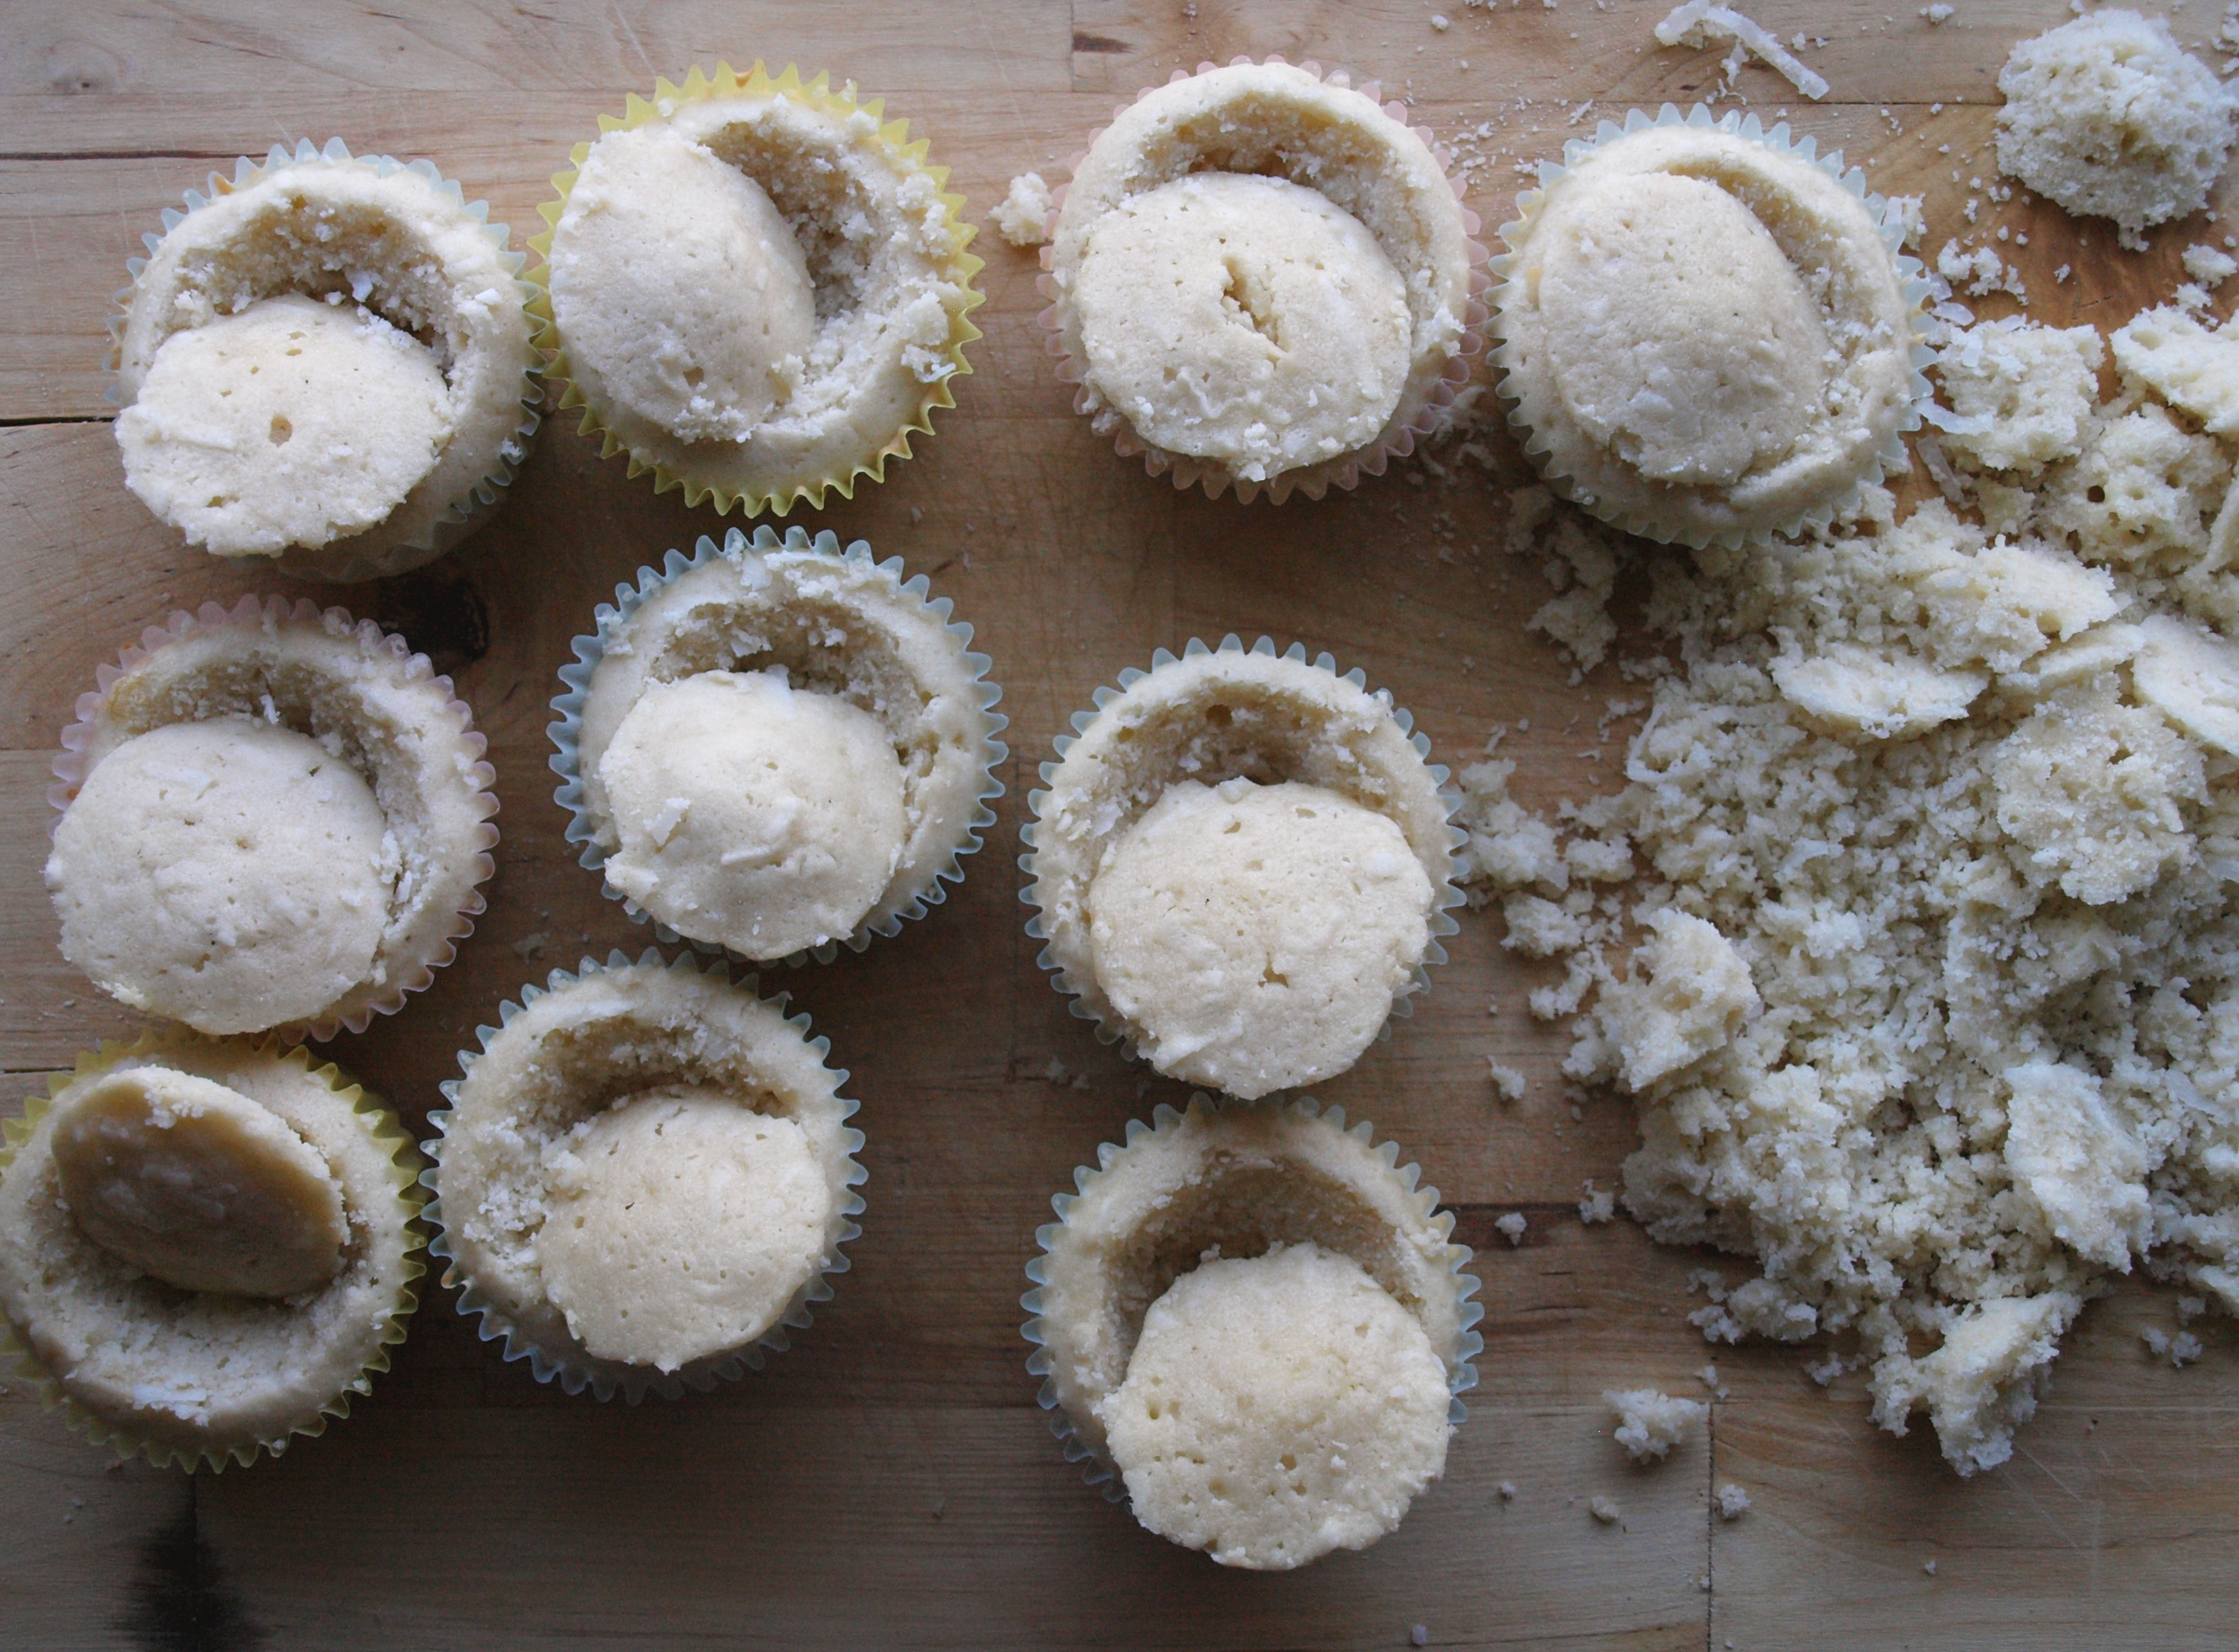 Coconut cupcakes filling hole 2